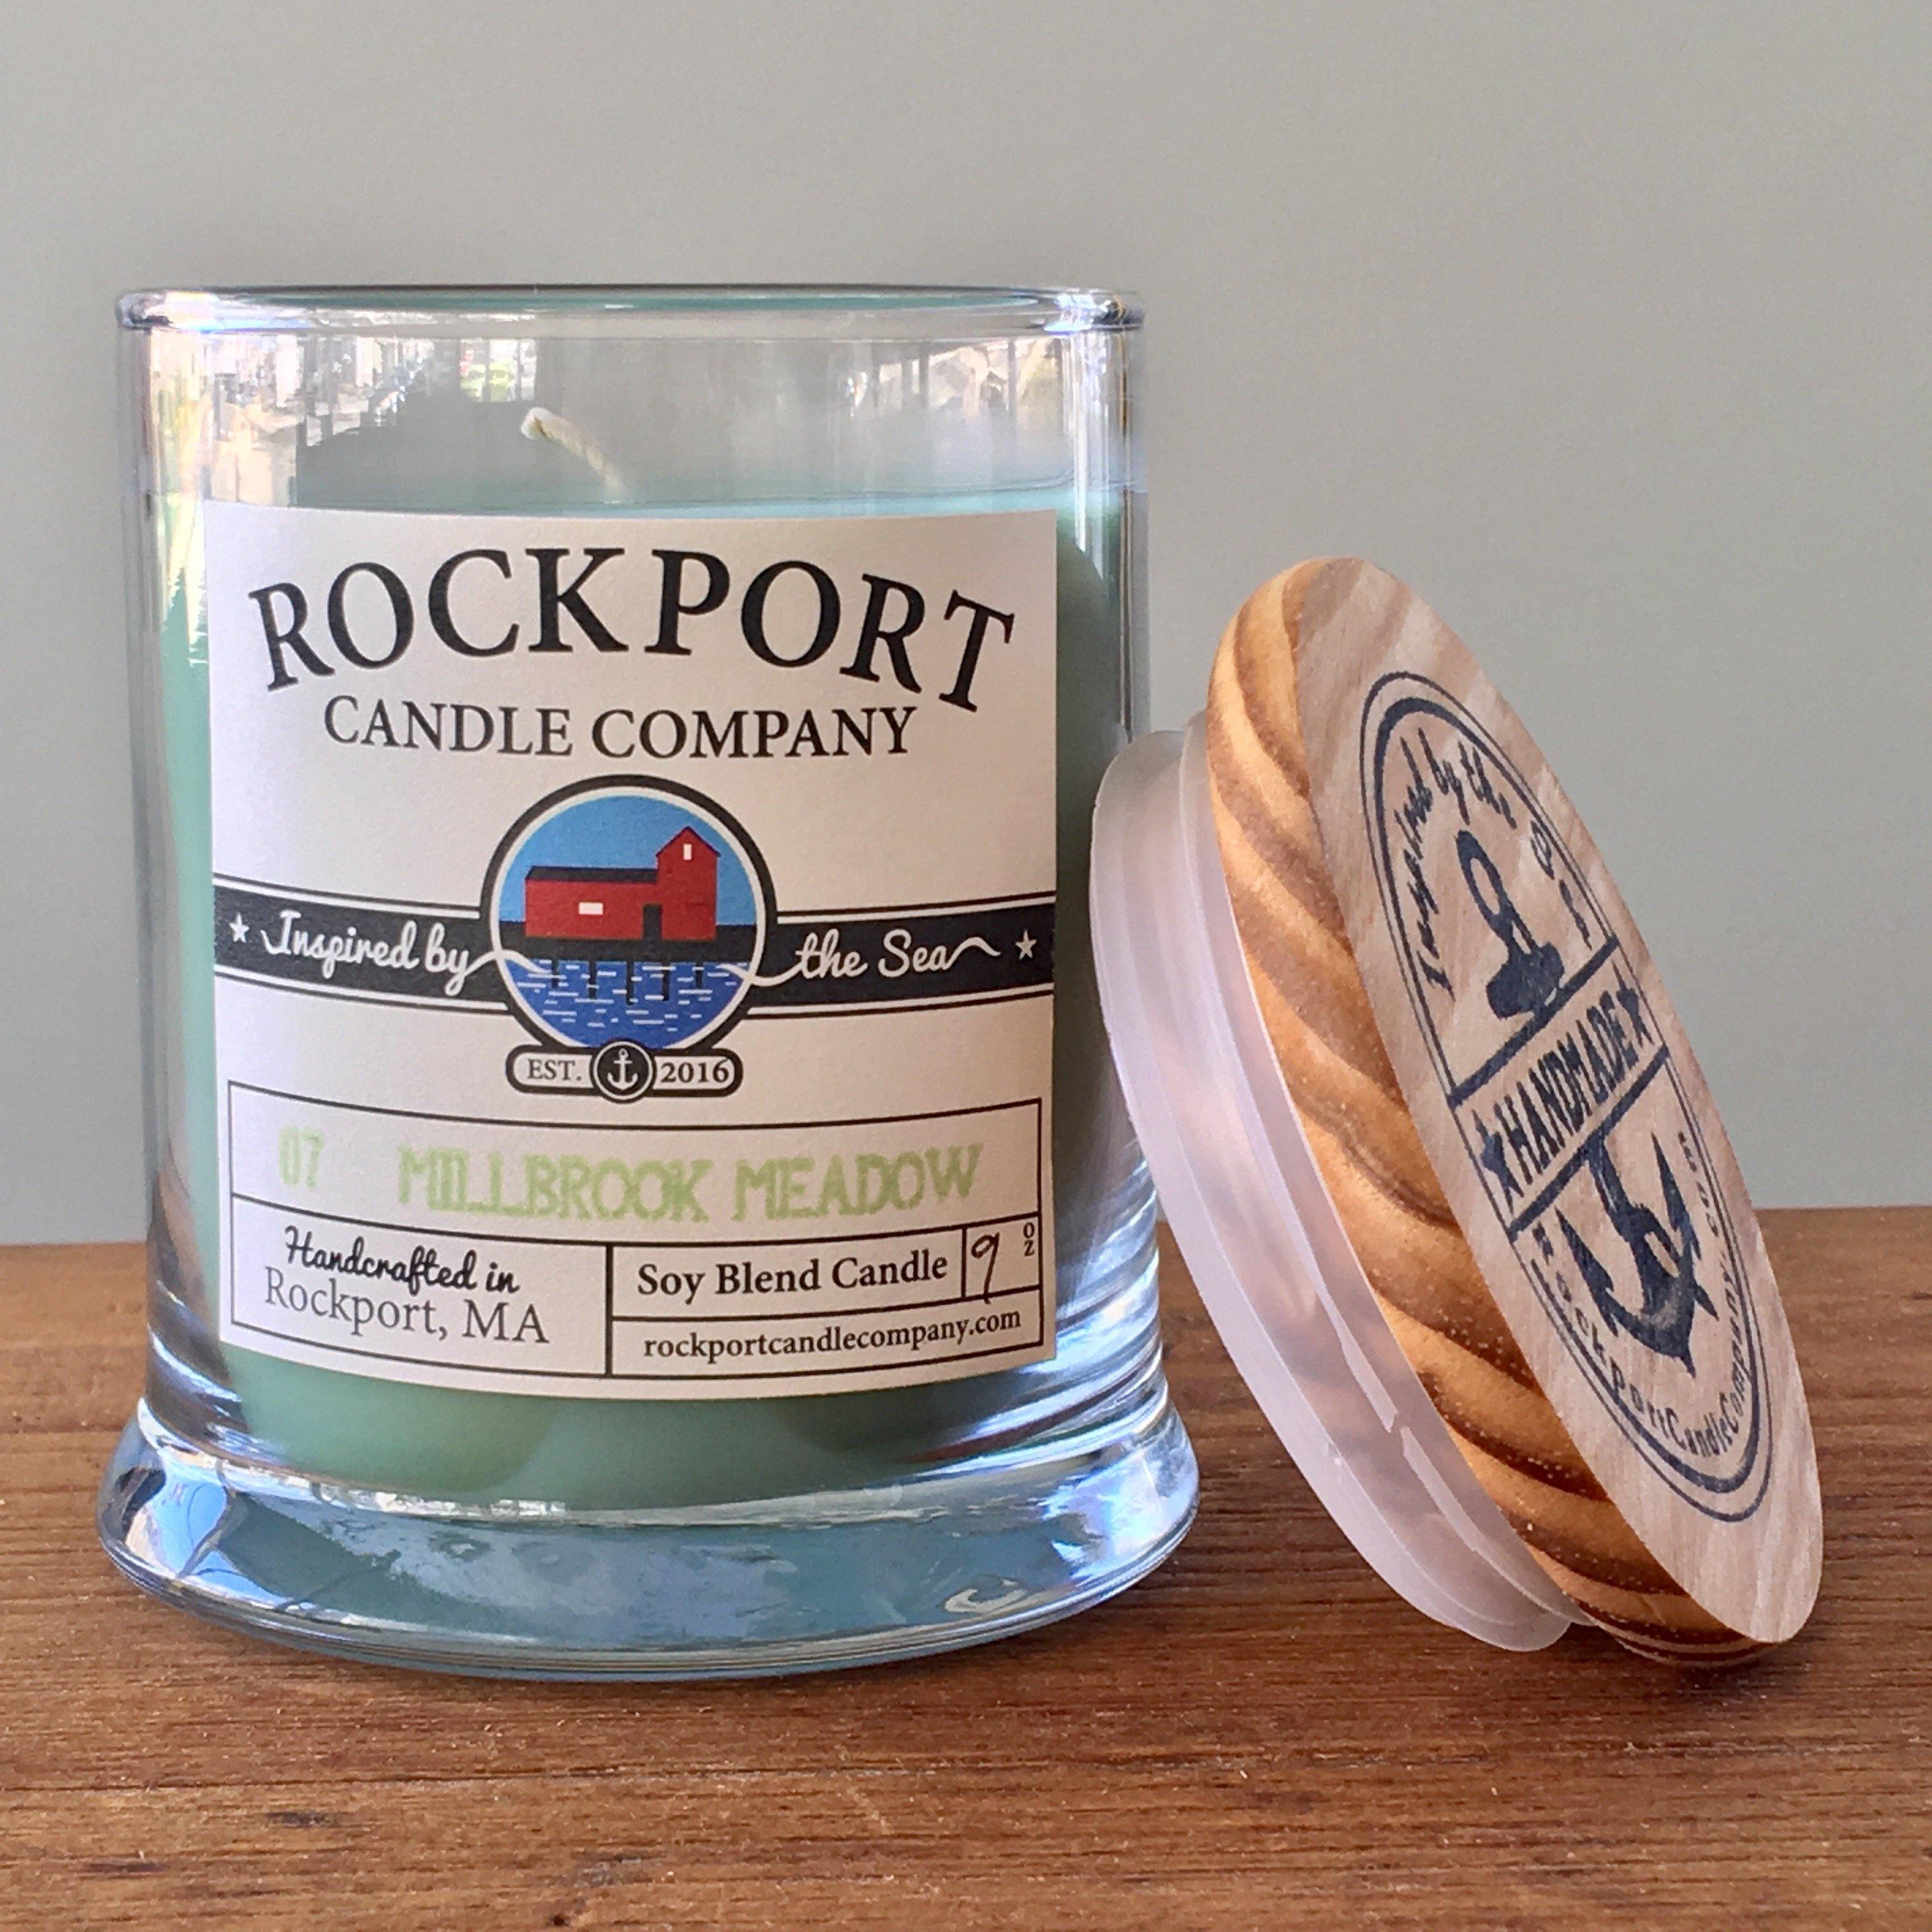 07 Millbrook Meadow Candles Rockport Candle Company